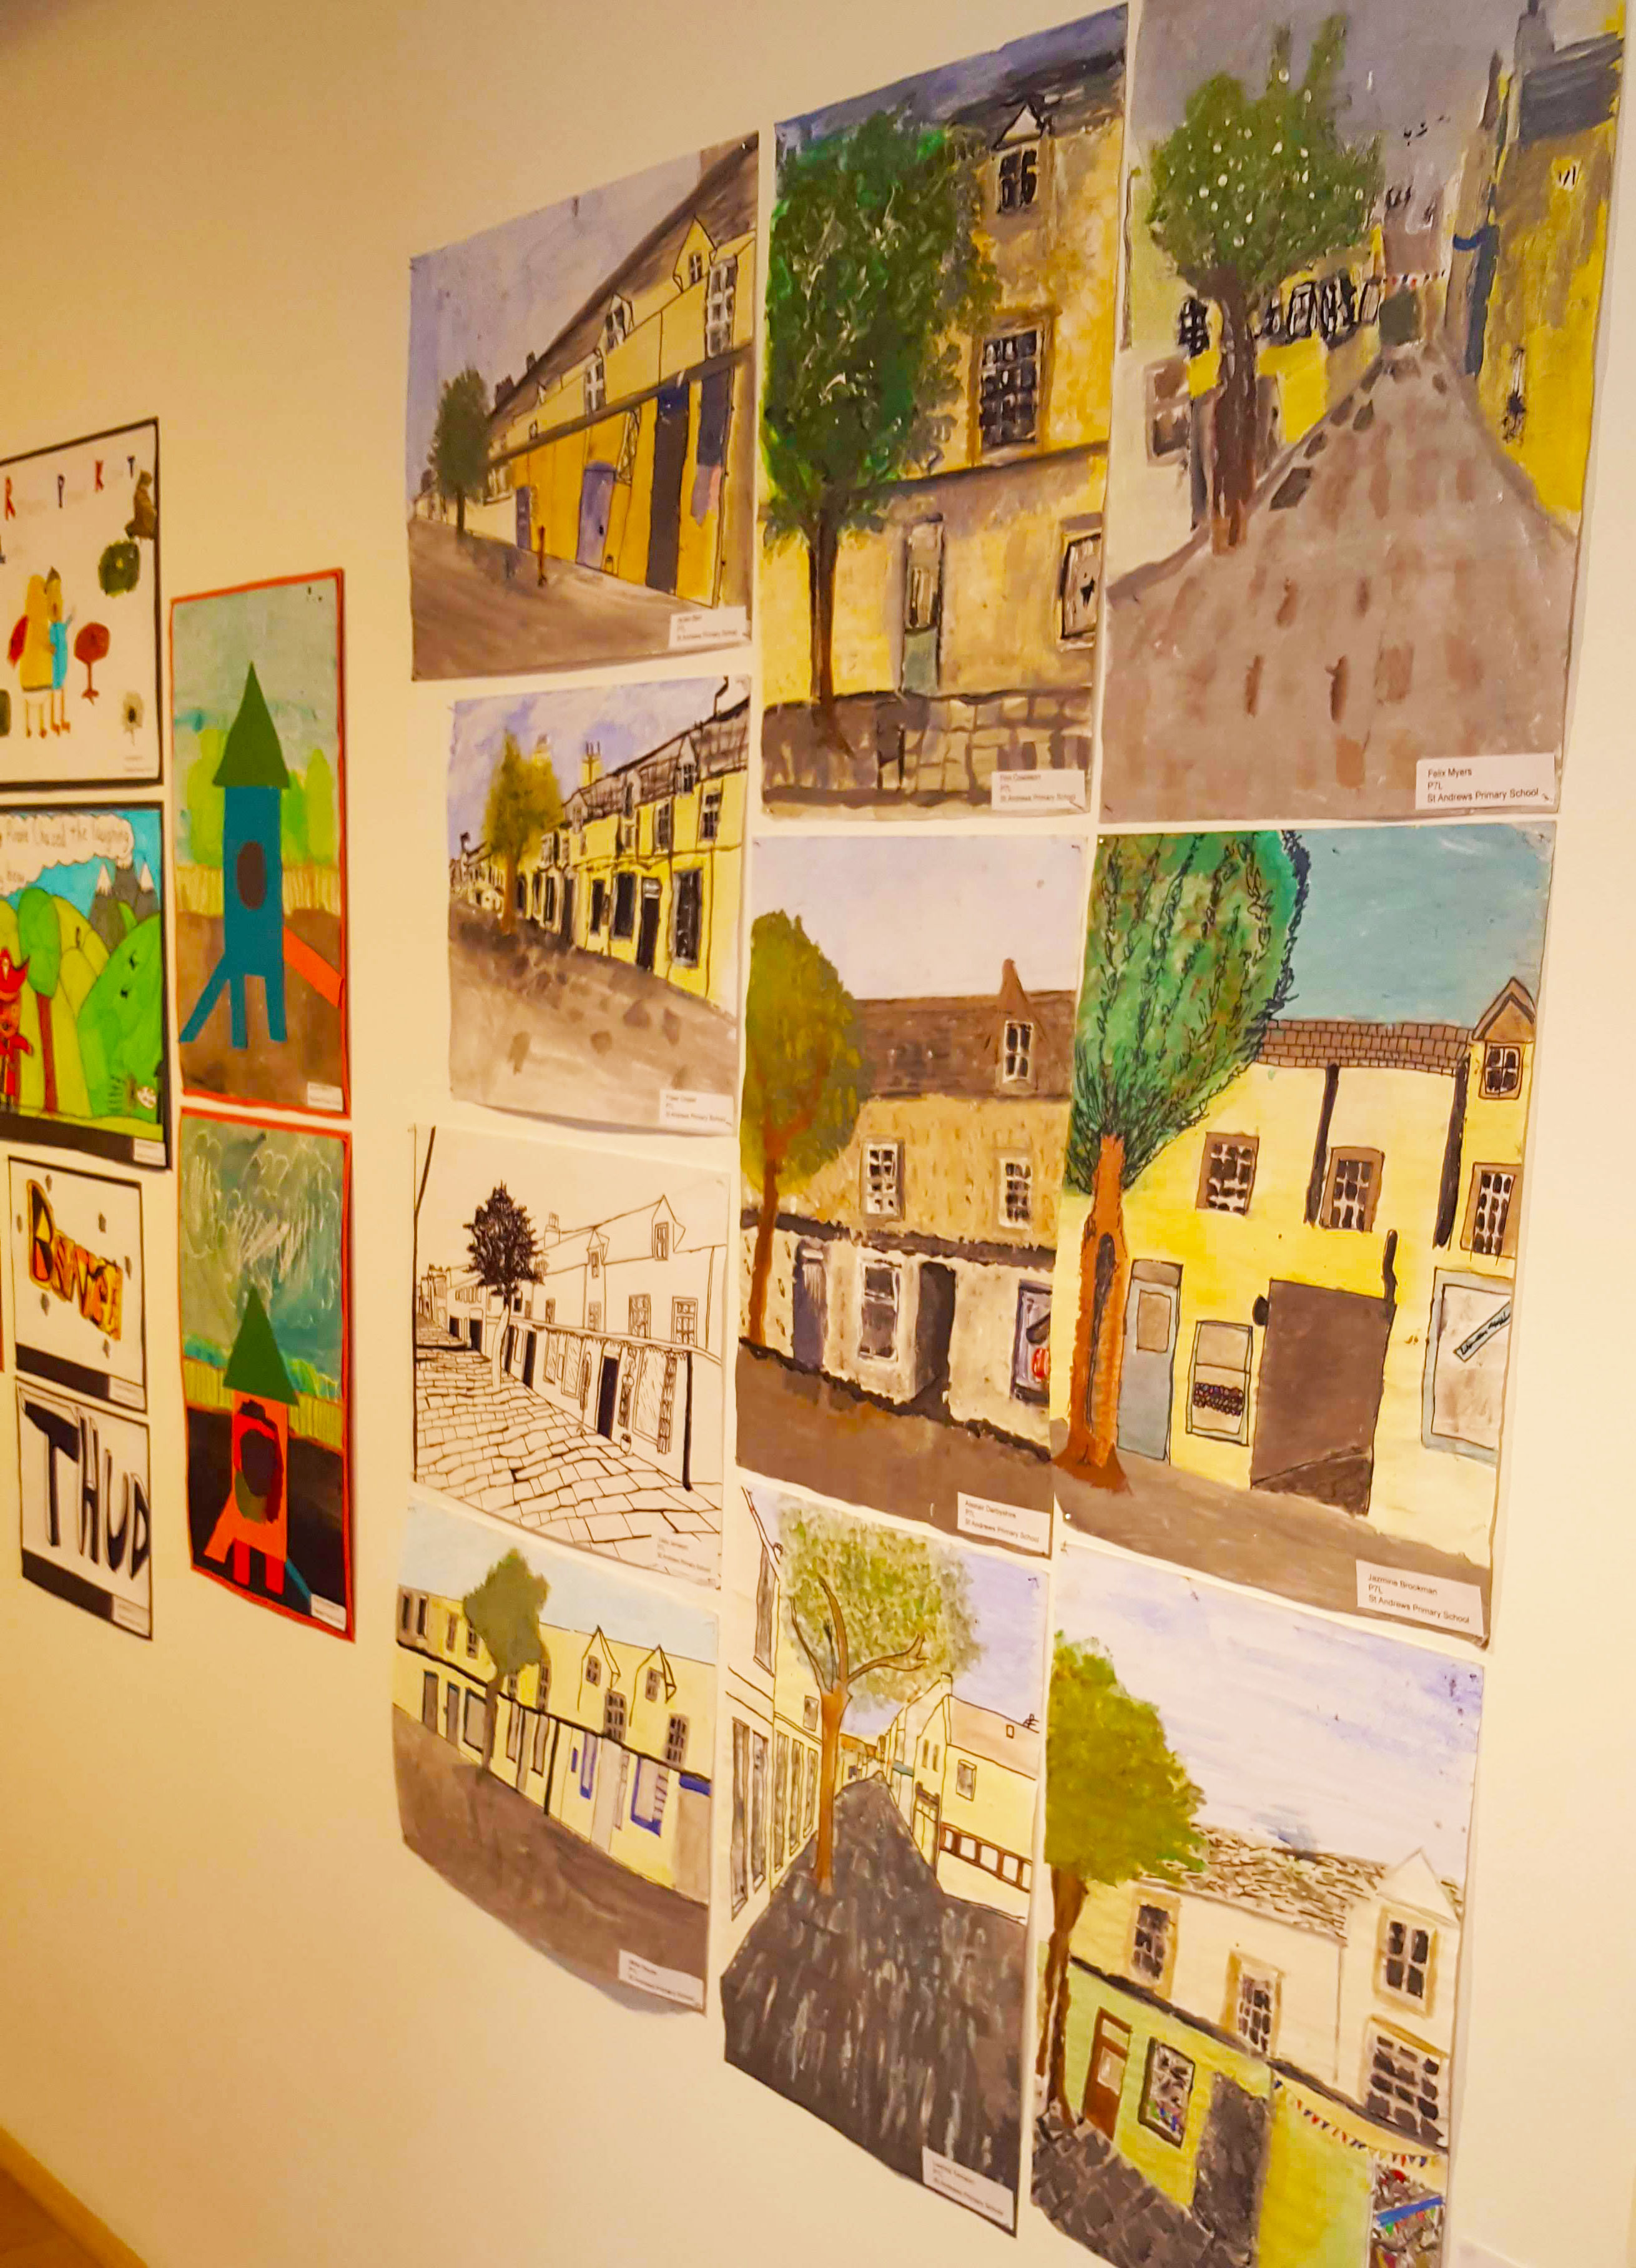 Artwork of Orkney buildings by local children in Pier Arts Centre Stromness.